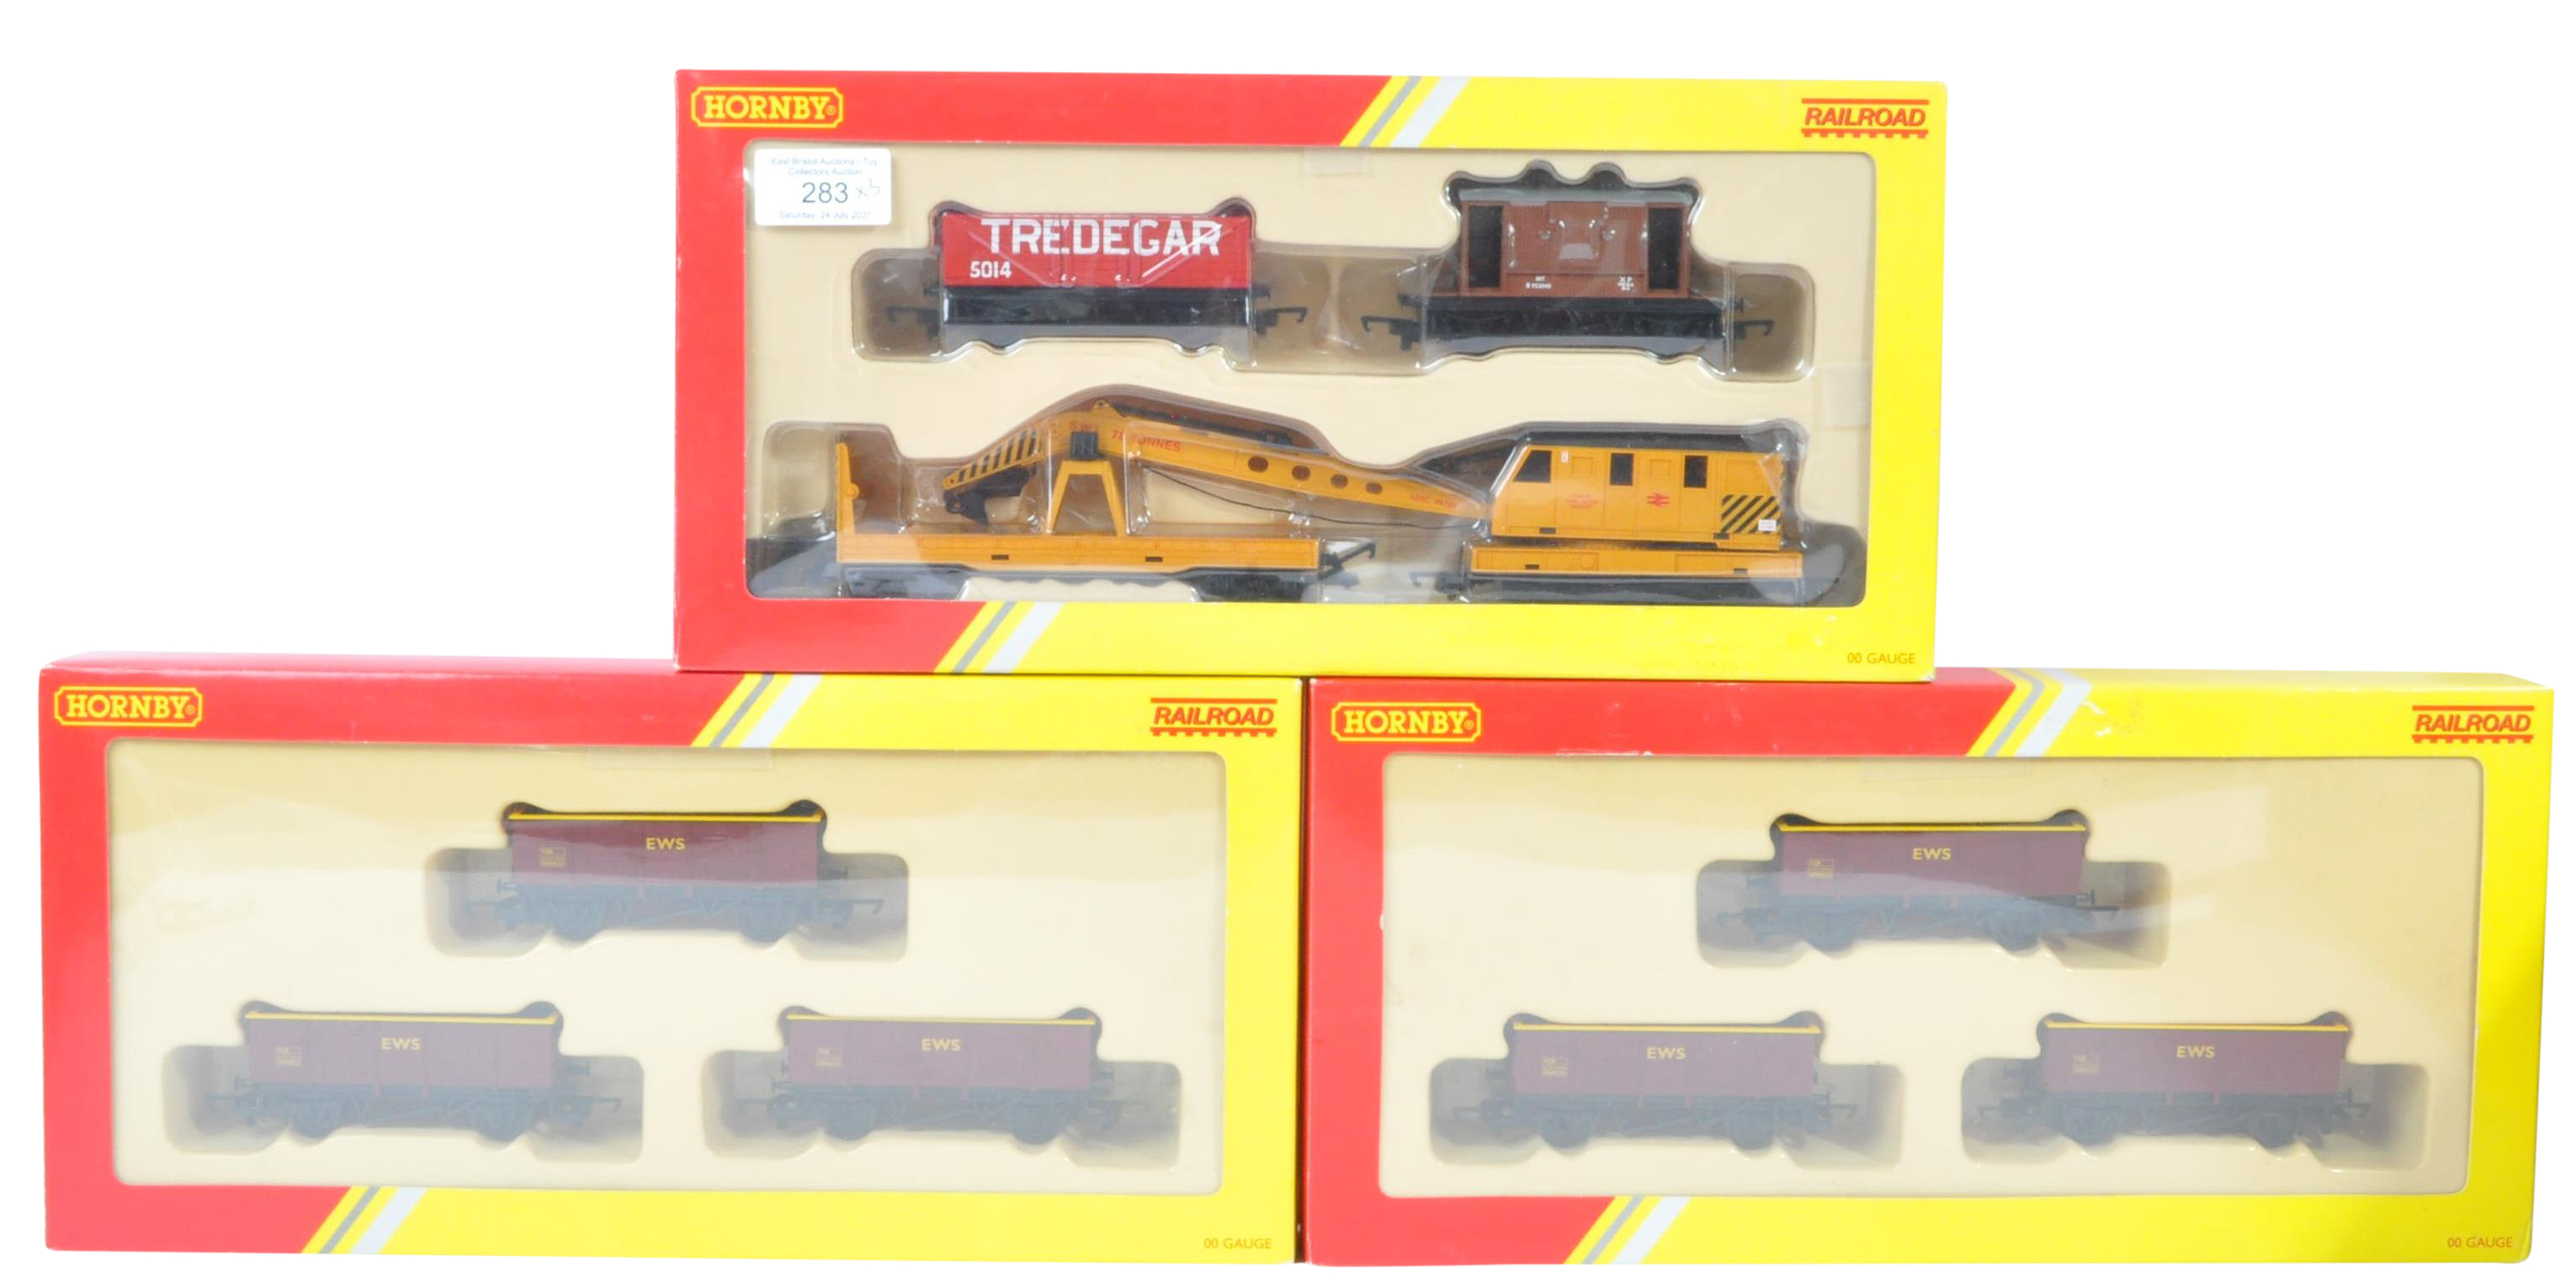 COLLECTION OF HORNBY 00 GAUGE MODEL RAILWAY ROLLING STOCK SETS